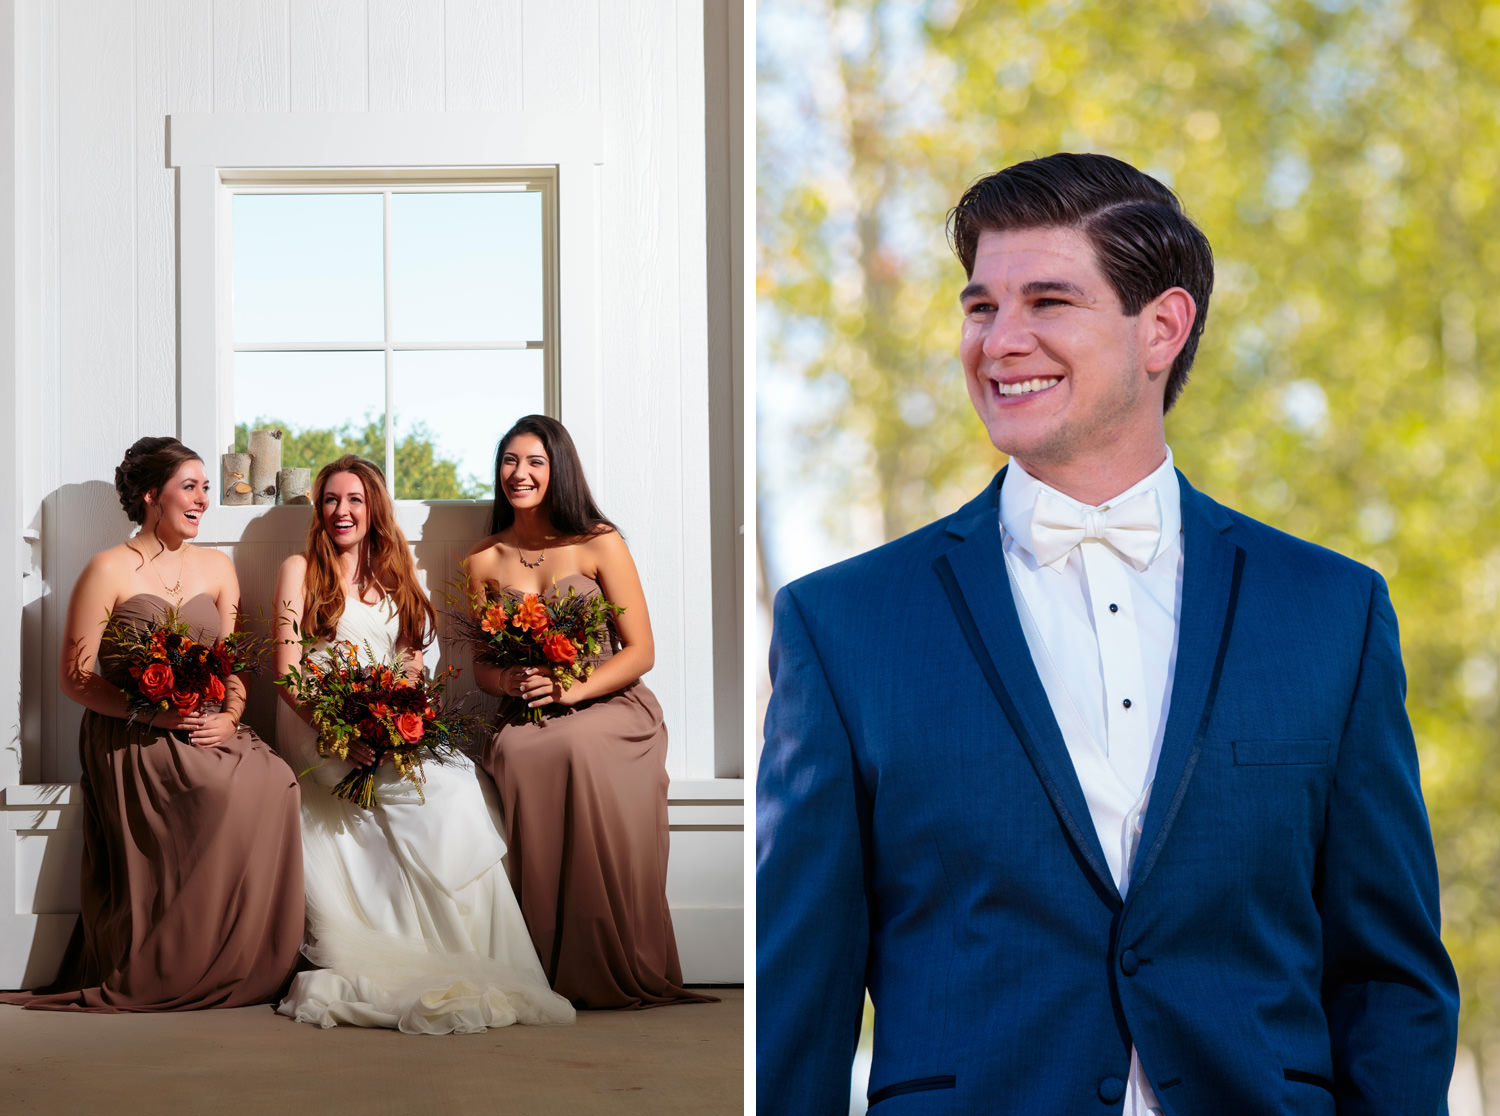 fort-collins-country-club-wedding-photographer-tomKphoto007.jpg